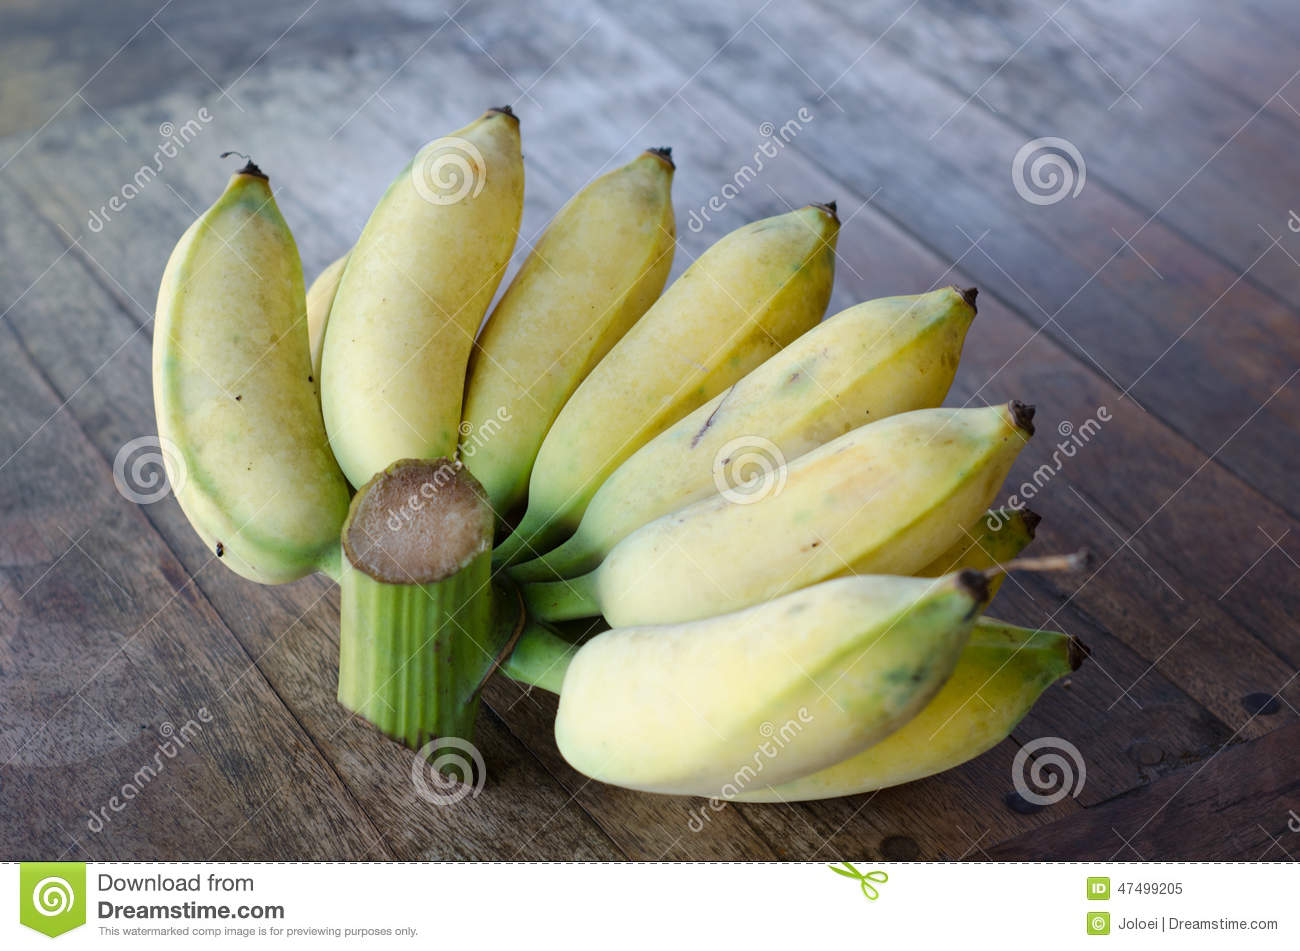 antimicrobial activity of banana musa sapientum Botany the banana plant is the largest herbaceous flowering plant the main or upright stem is actually a pseudostem, growing from a corm, to a height of 6 to 76 meters.